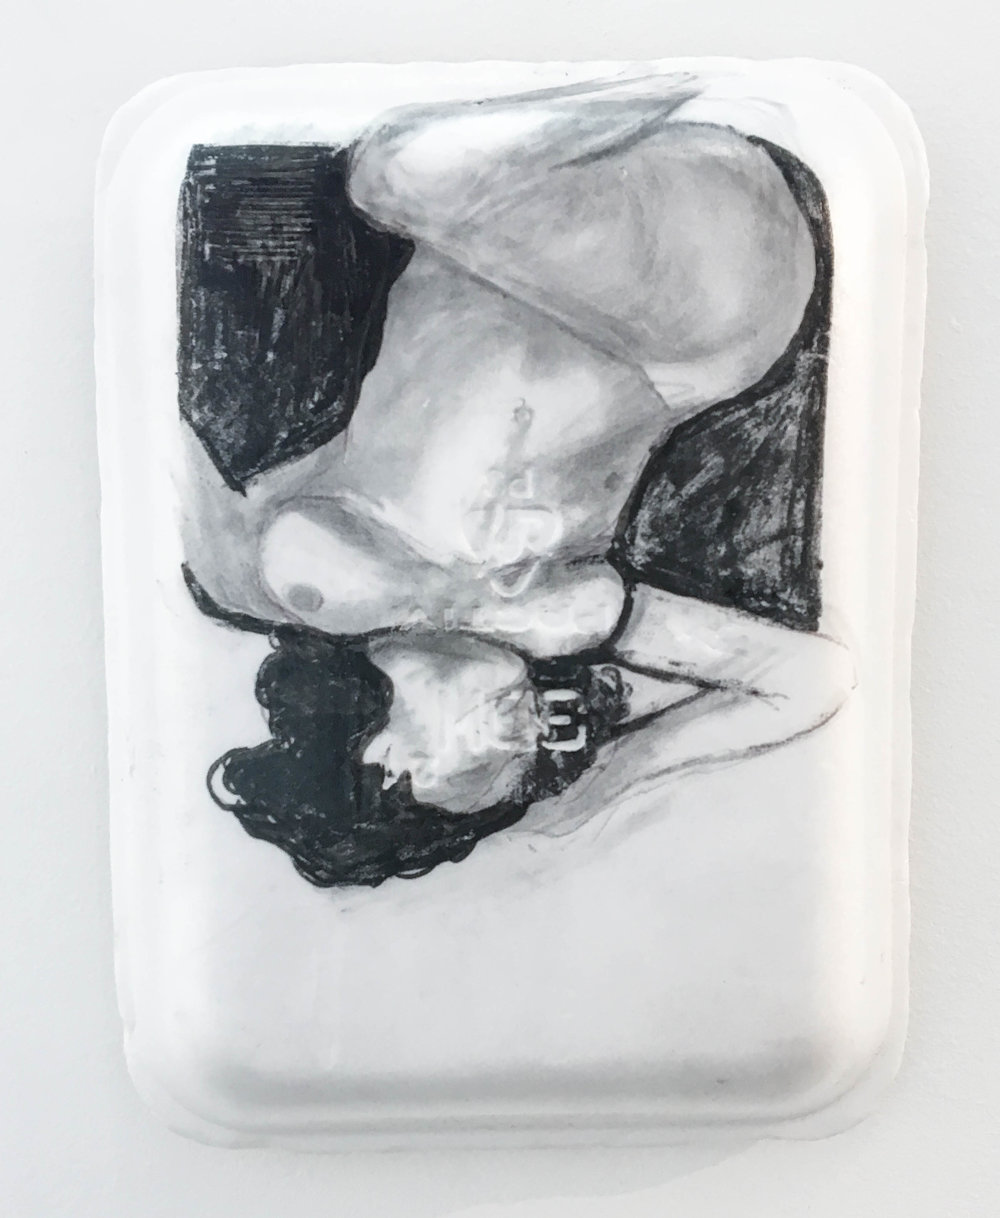 <b>Untitled 3</b><br>Sharpie, gesso, graphite and acrylic on Styrofoam meat tray<br>10.5 x 8 in.